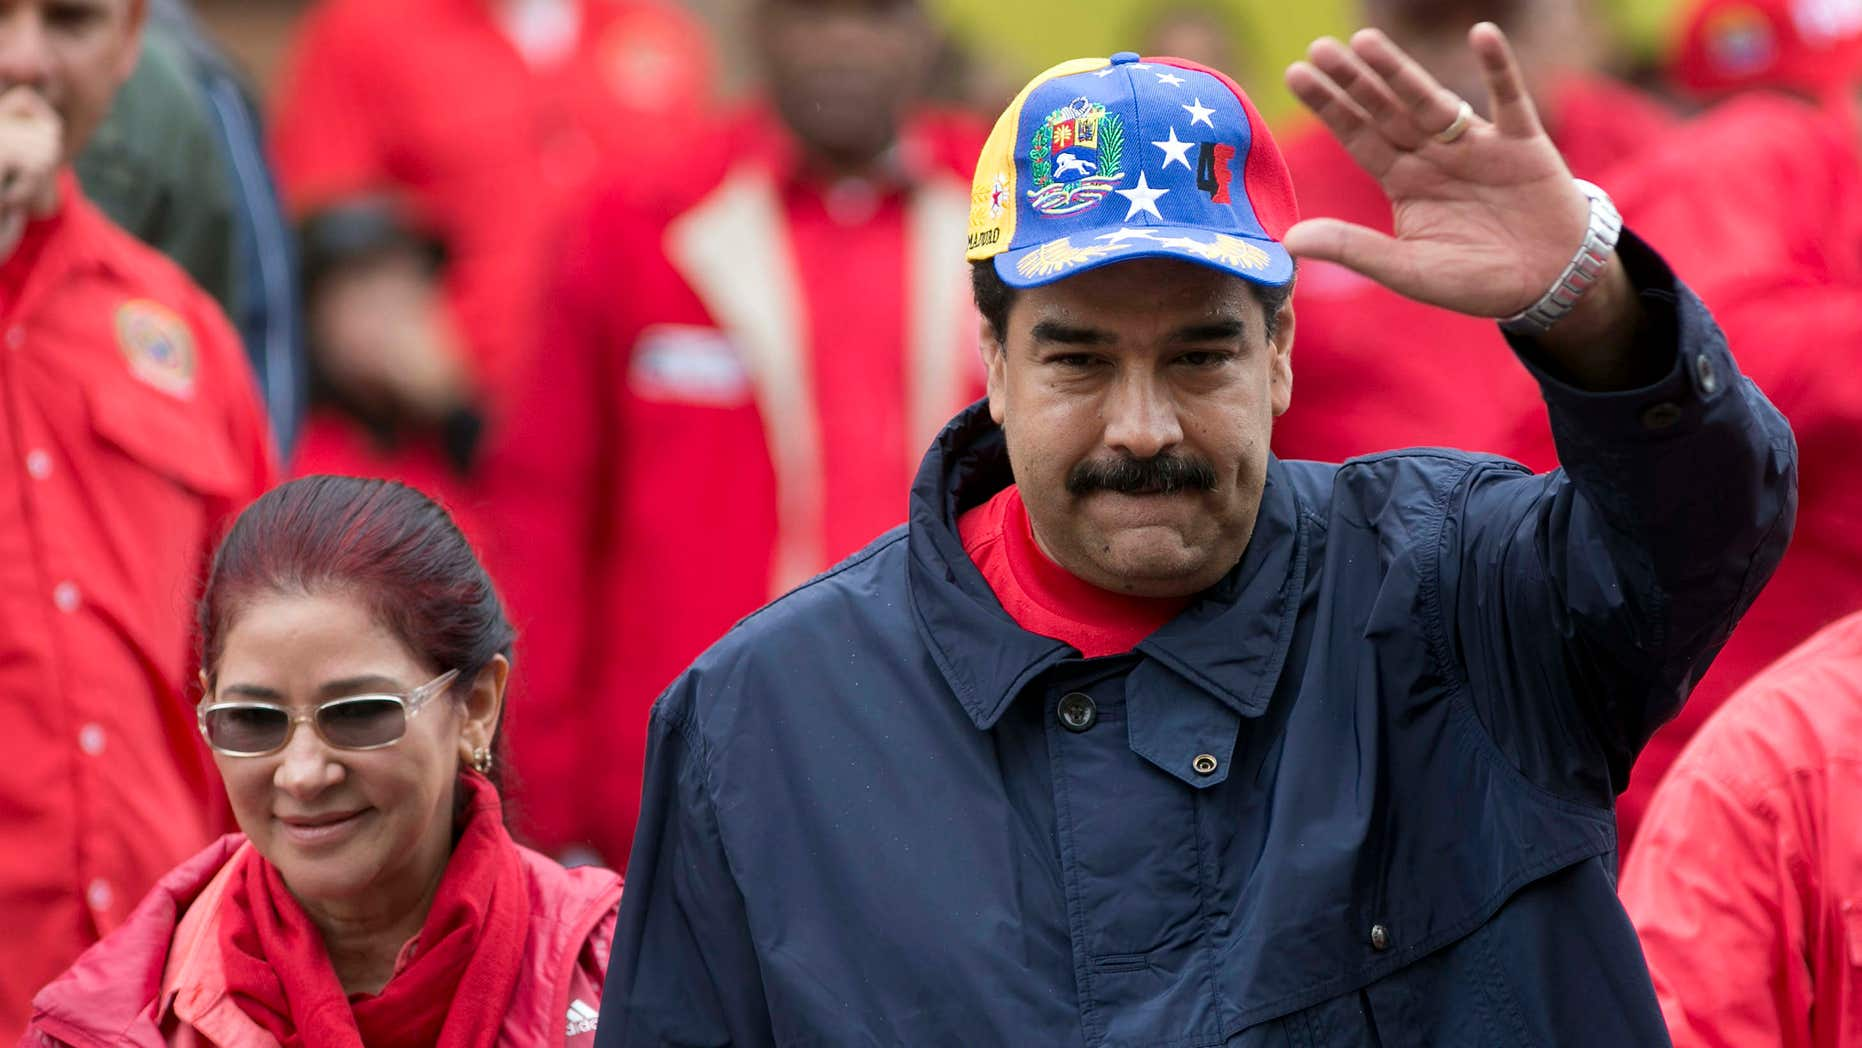 FILE - In this May 1, 2016 file photo, Venezuela's President Nicolas Maduro waves to supporters alongside first lady Cilia Flores during a labor day march in Caracas, Venezuela.